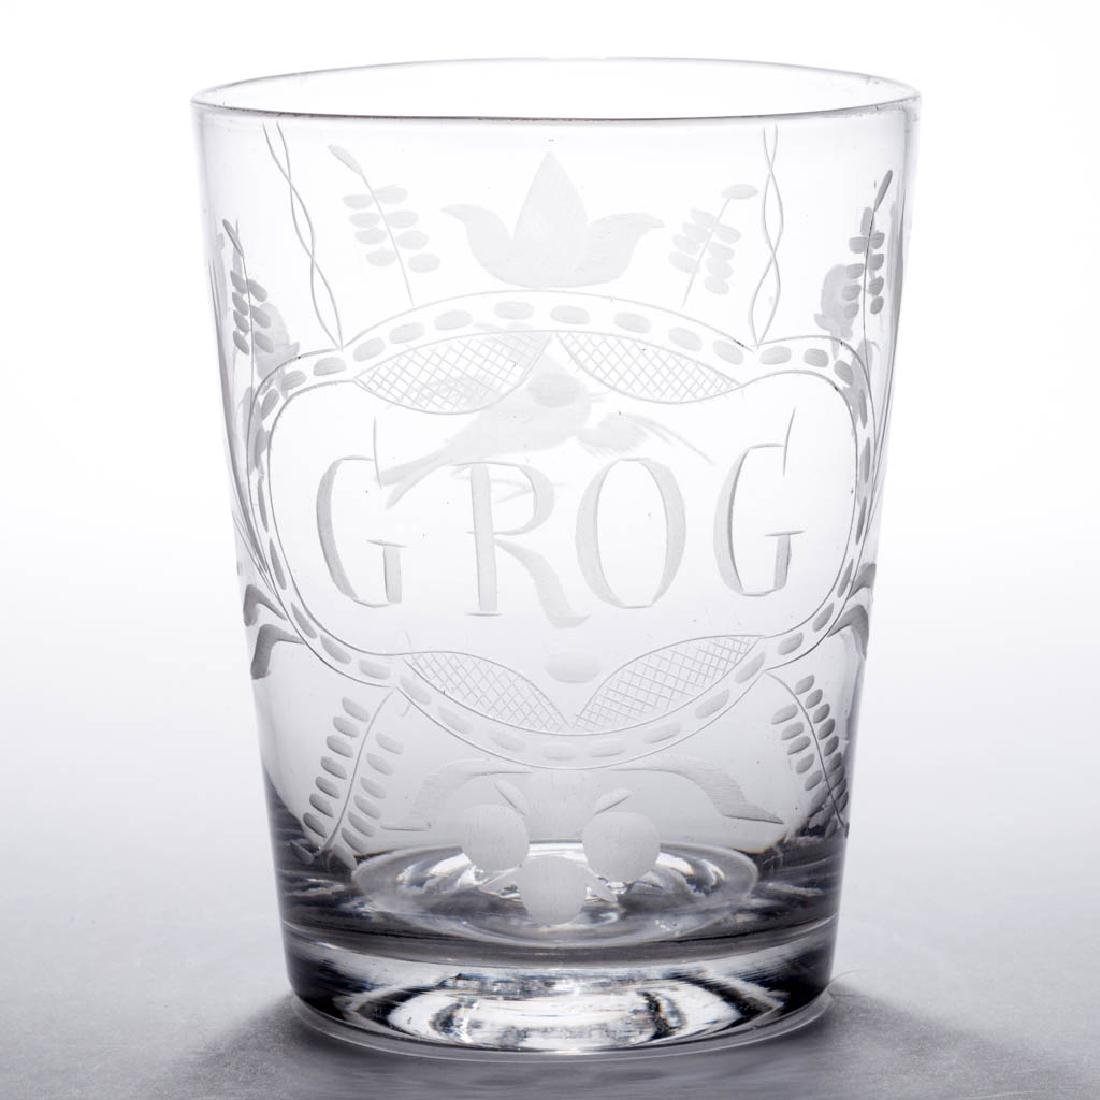 FREE-BLOWN AND ENGRAVED FLIP GLASS